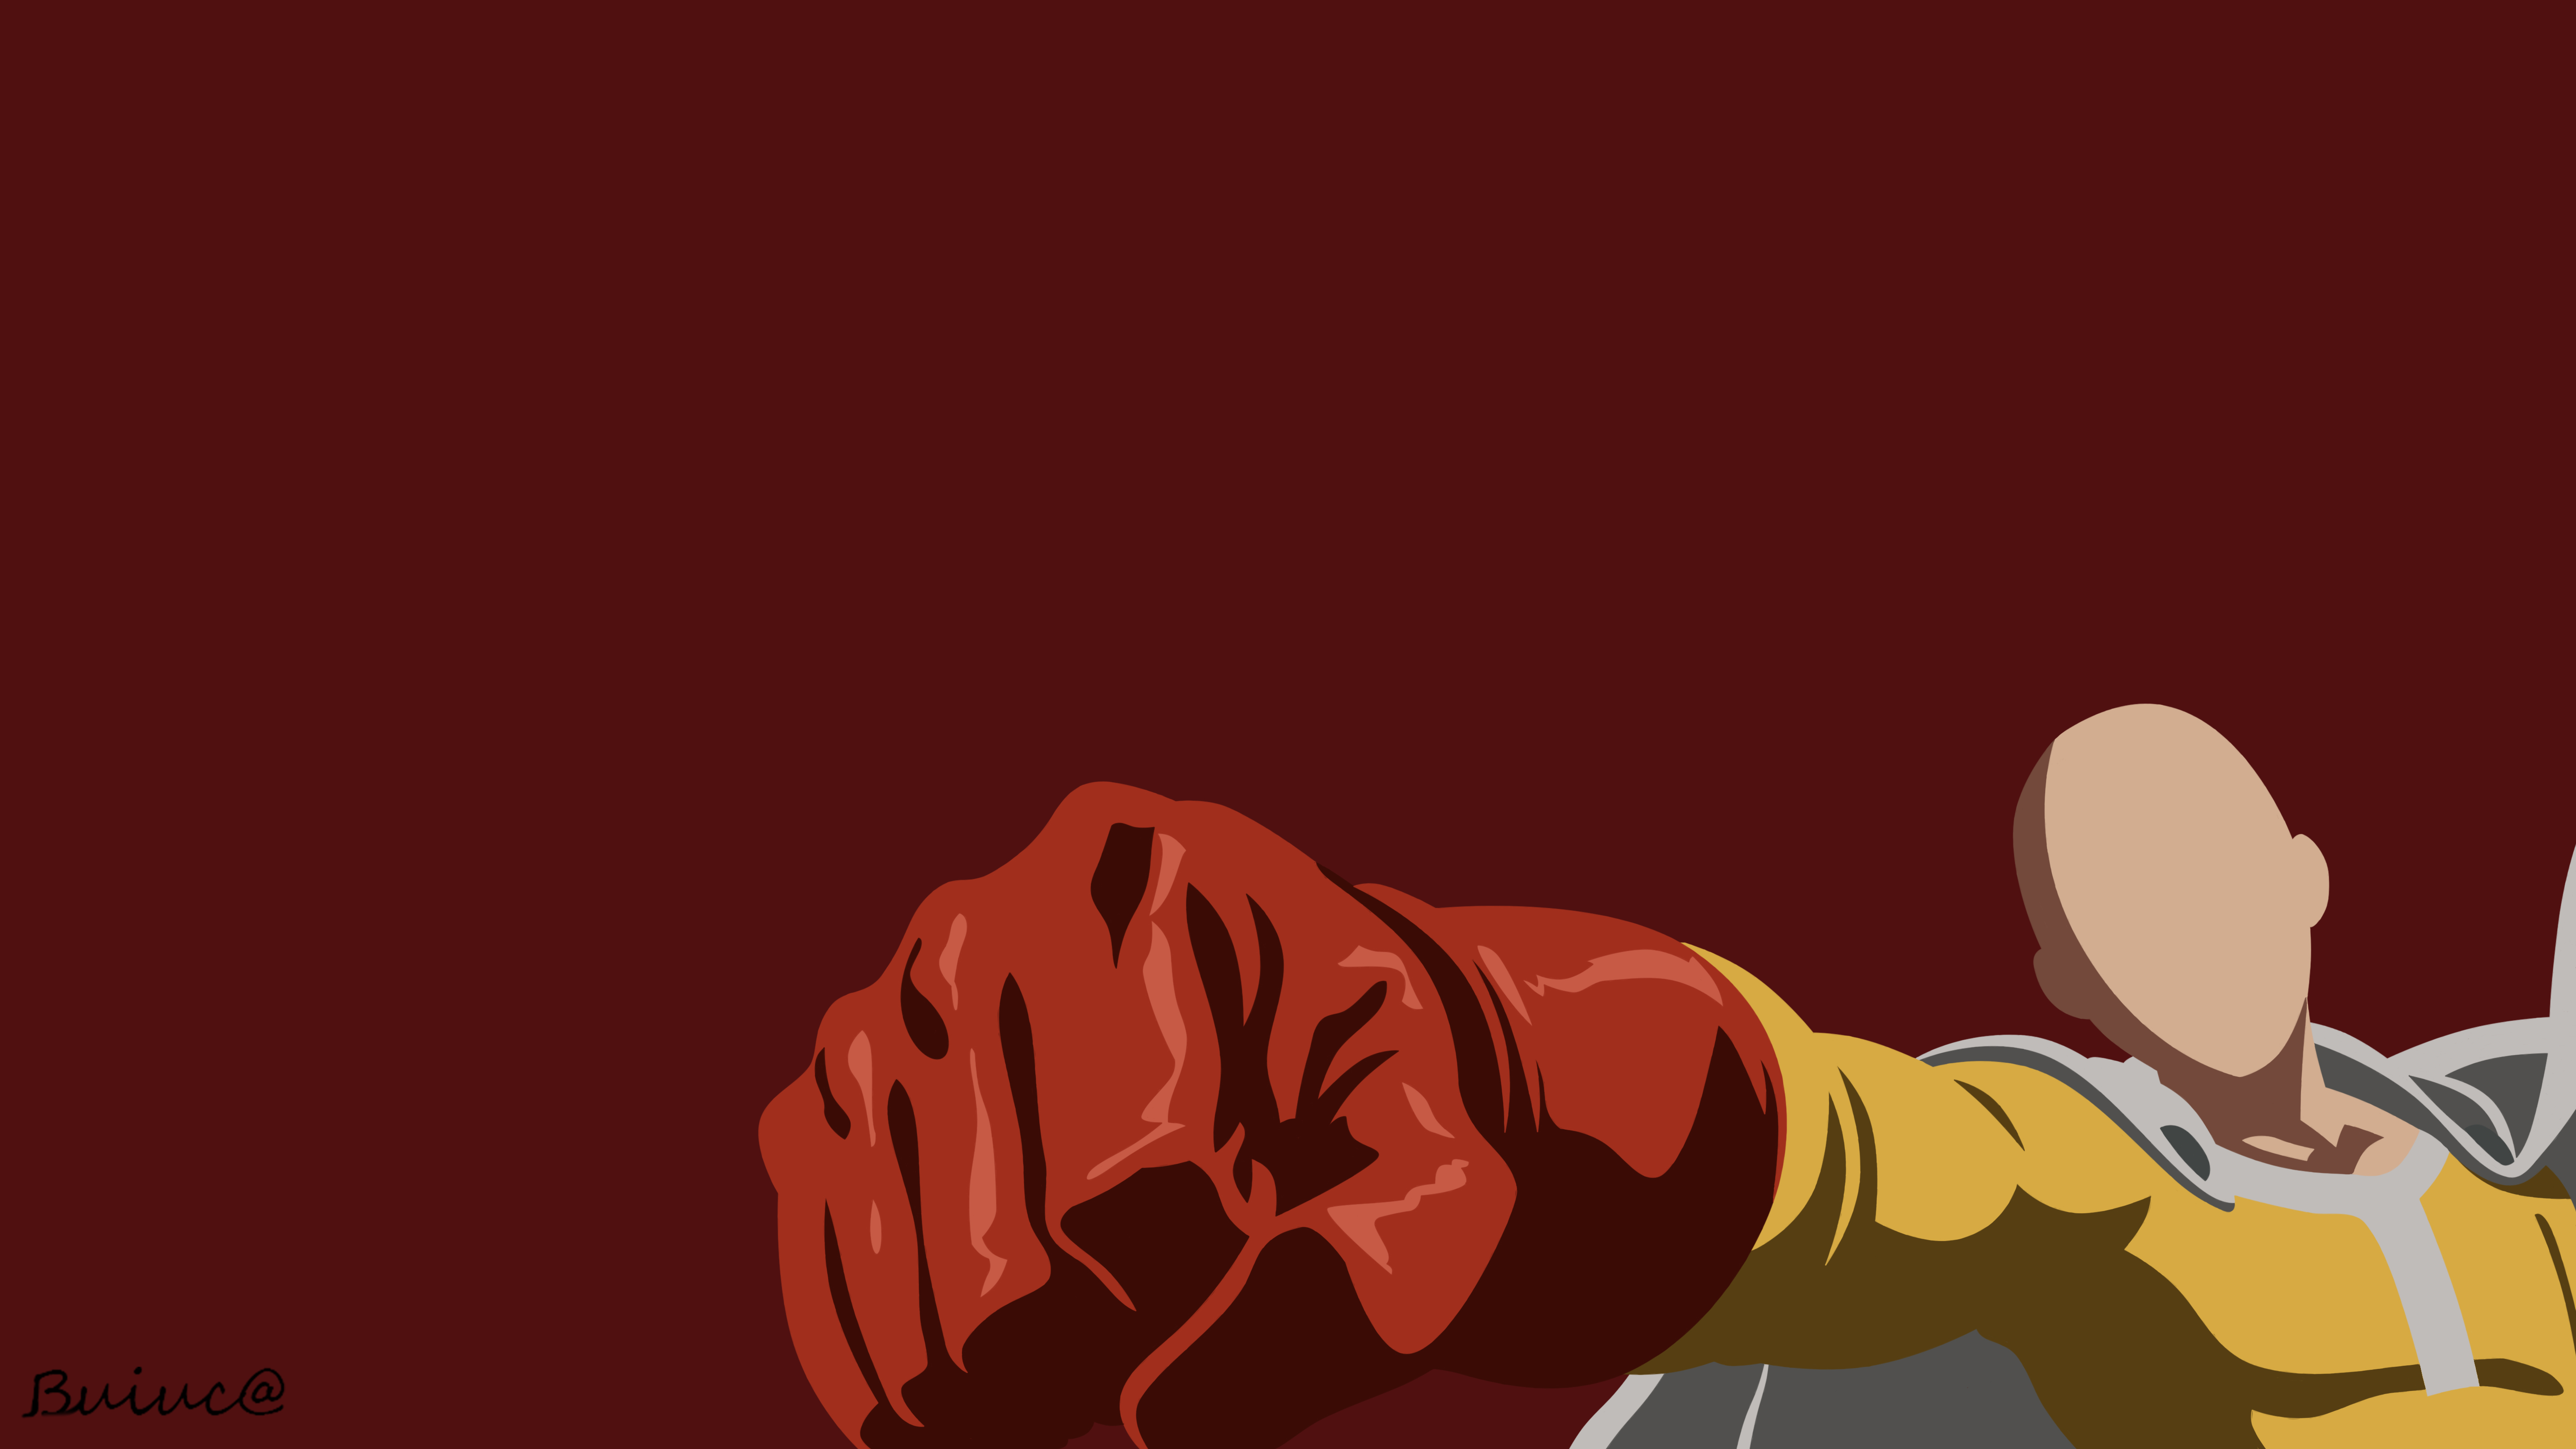 saitama  one punch man  by novemberreaper on deviantart vector first year topic second chapter vector festival